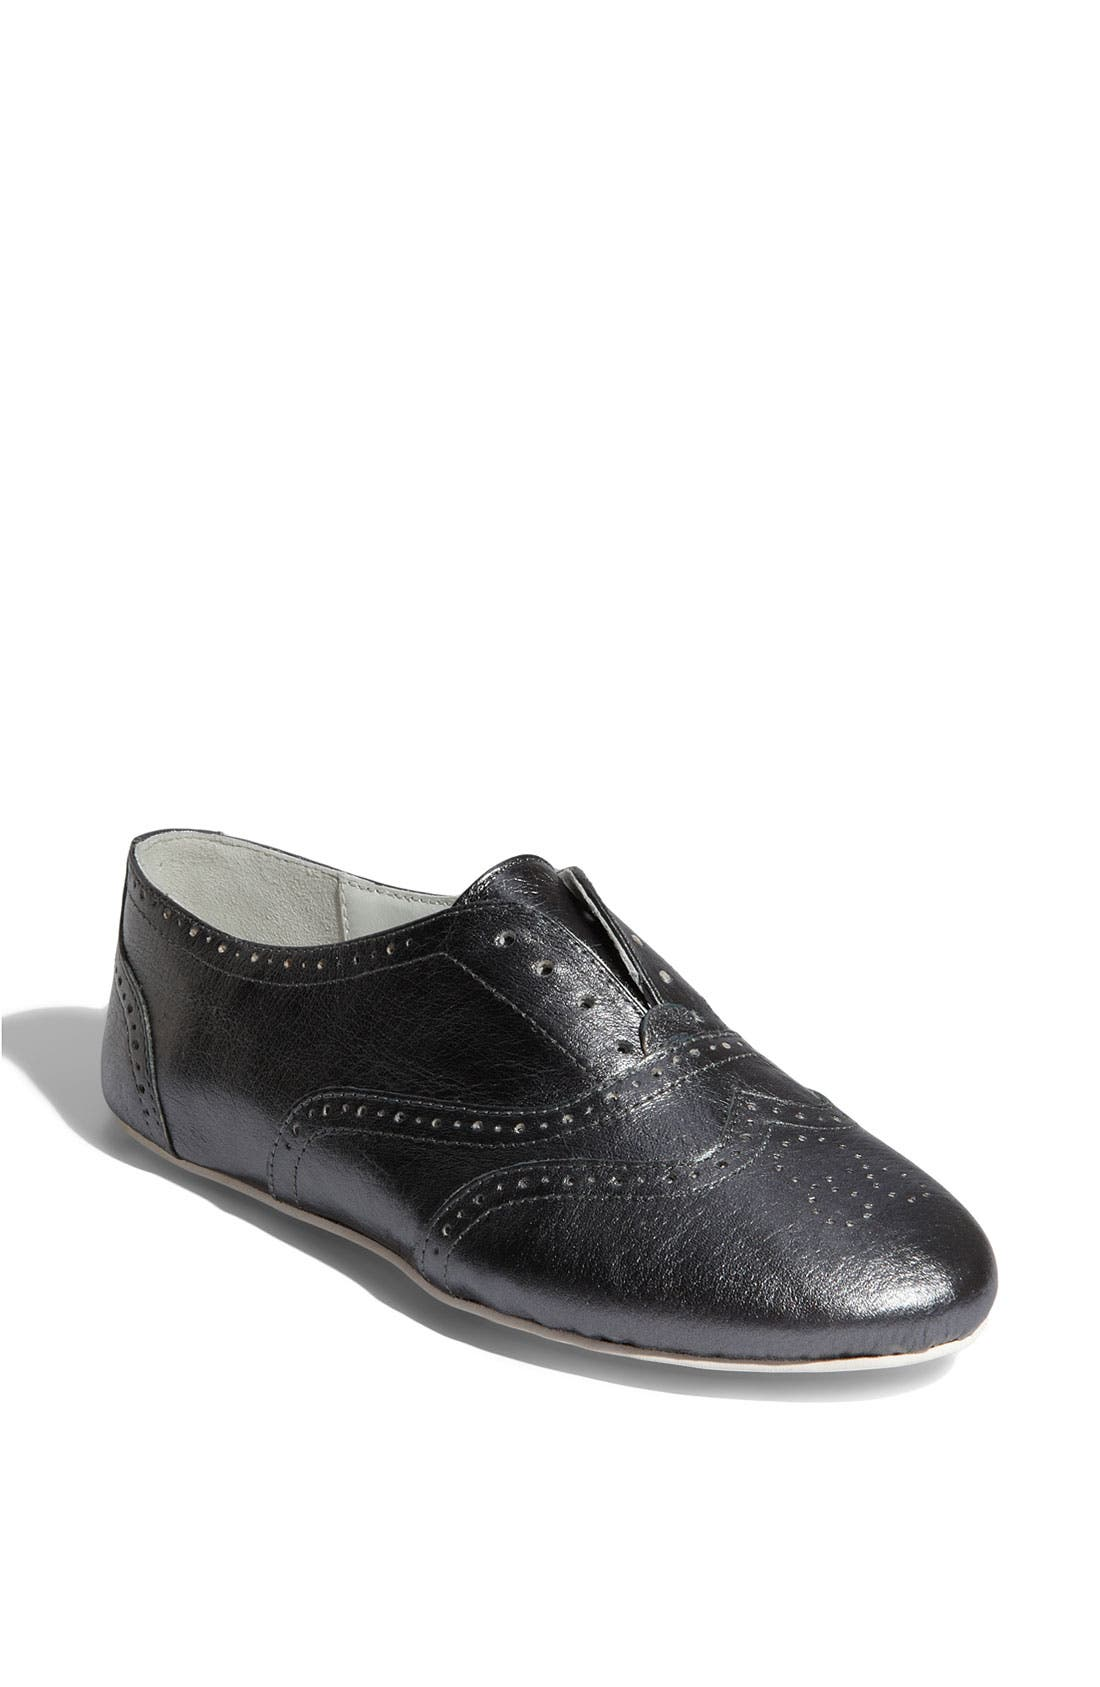 Alternate Image 1 Selected - Joe's 'Strappy' Laceless Oxford